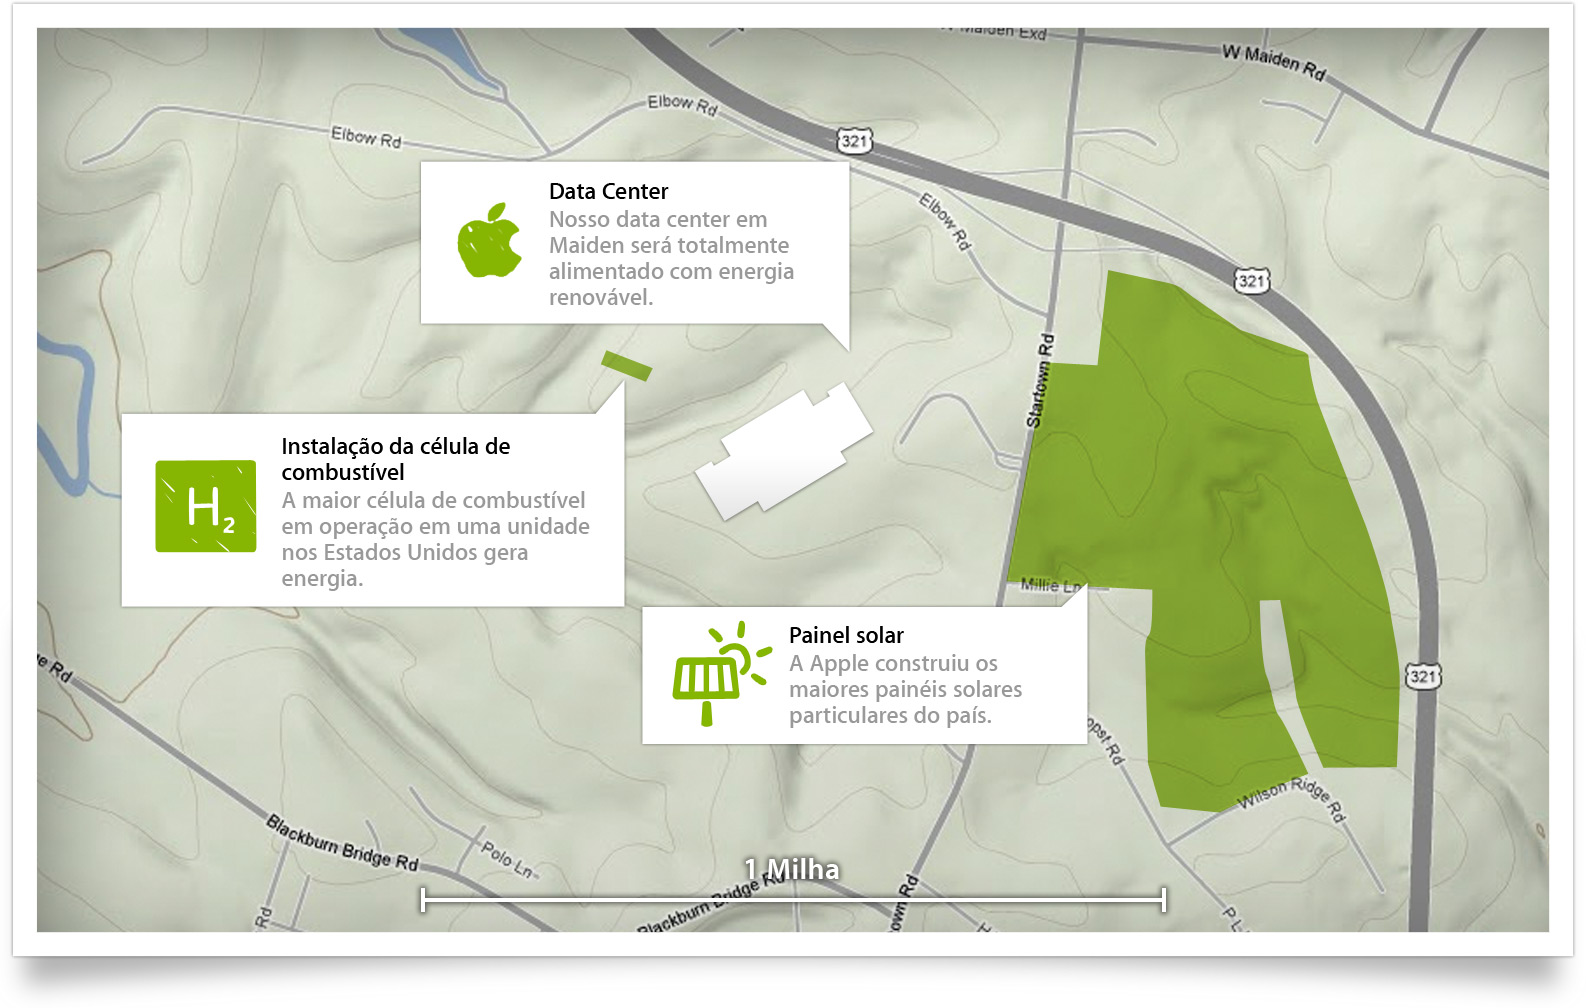 Data center da Apple em Maiden